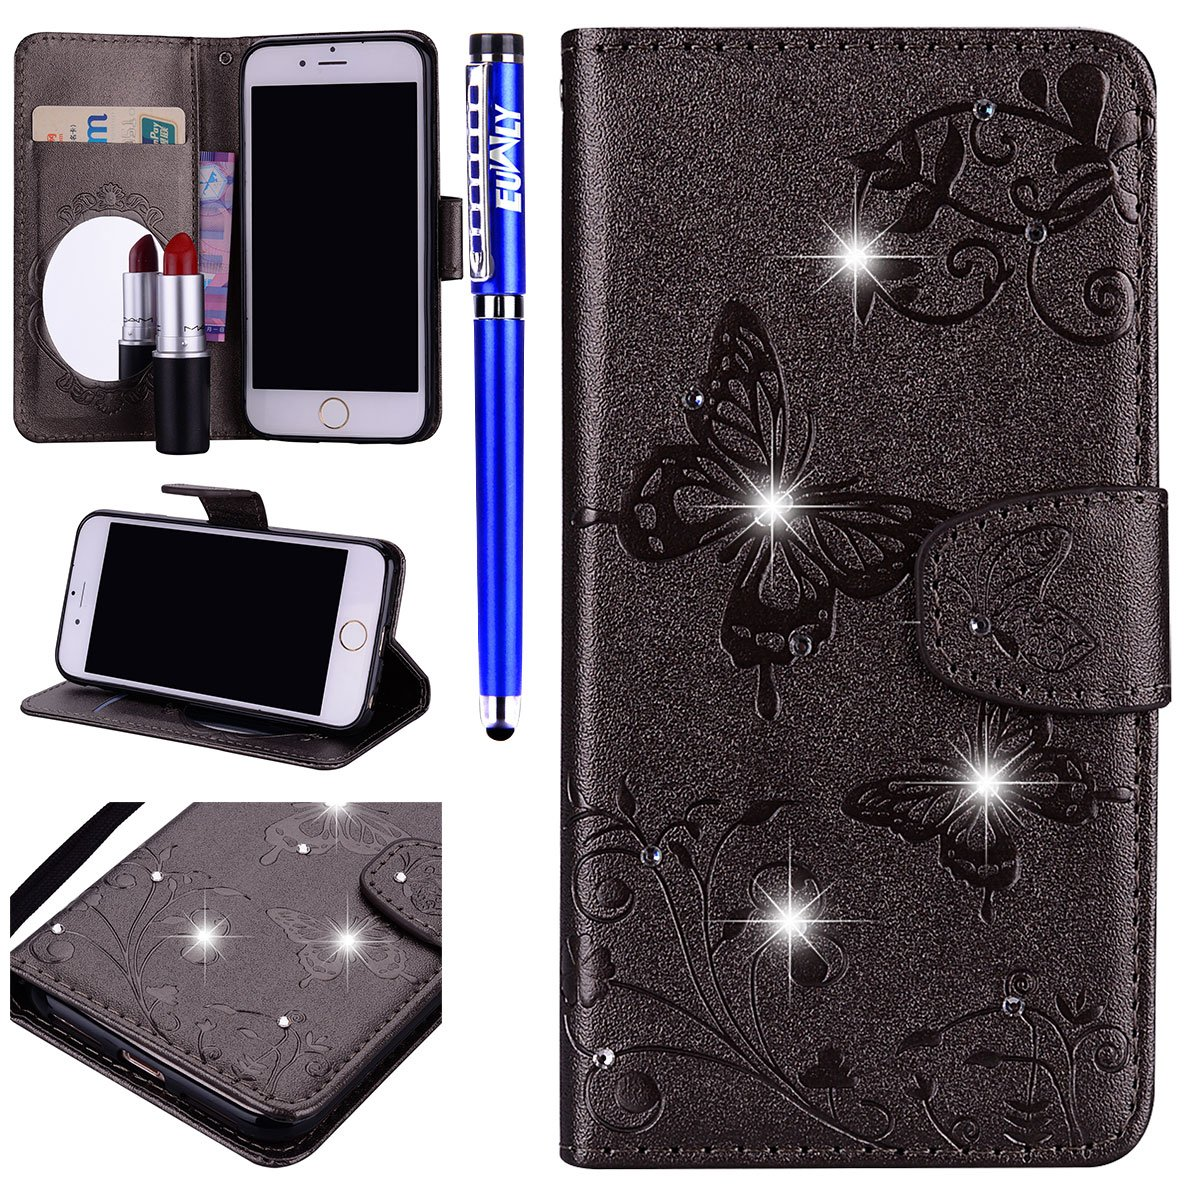 Case Iphone 5s/iPhone If, Cover iPhone 5S Mirror, euwly Wallet Leather Case Protective Bumper Flip Case Cover With Glitter Rhinestone Crystal Diamante Diamond Luxury Elegant Ultra slim Cover with Cosmetic Mirror Belle Butterfly Flowers Design Leather Case